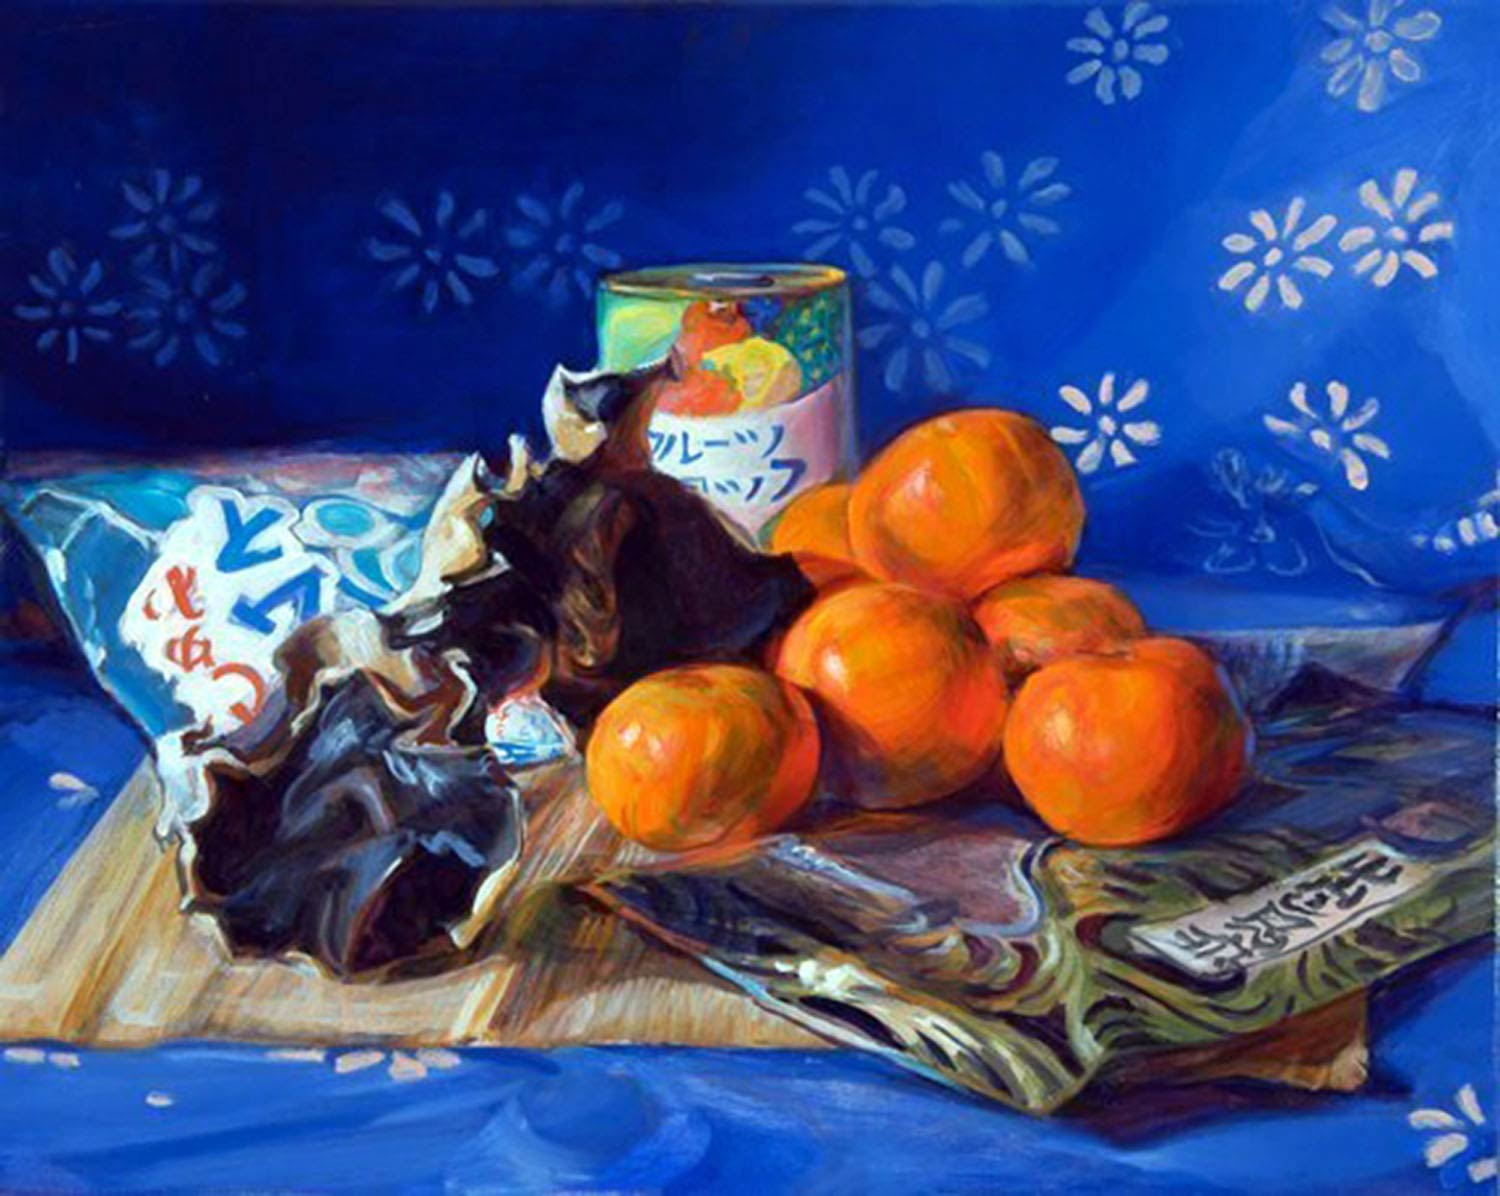 Japanese Snacks 24 x 30 in oil canvas 2009